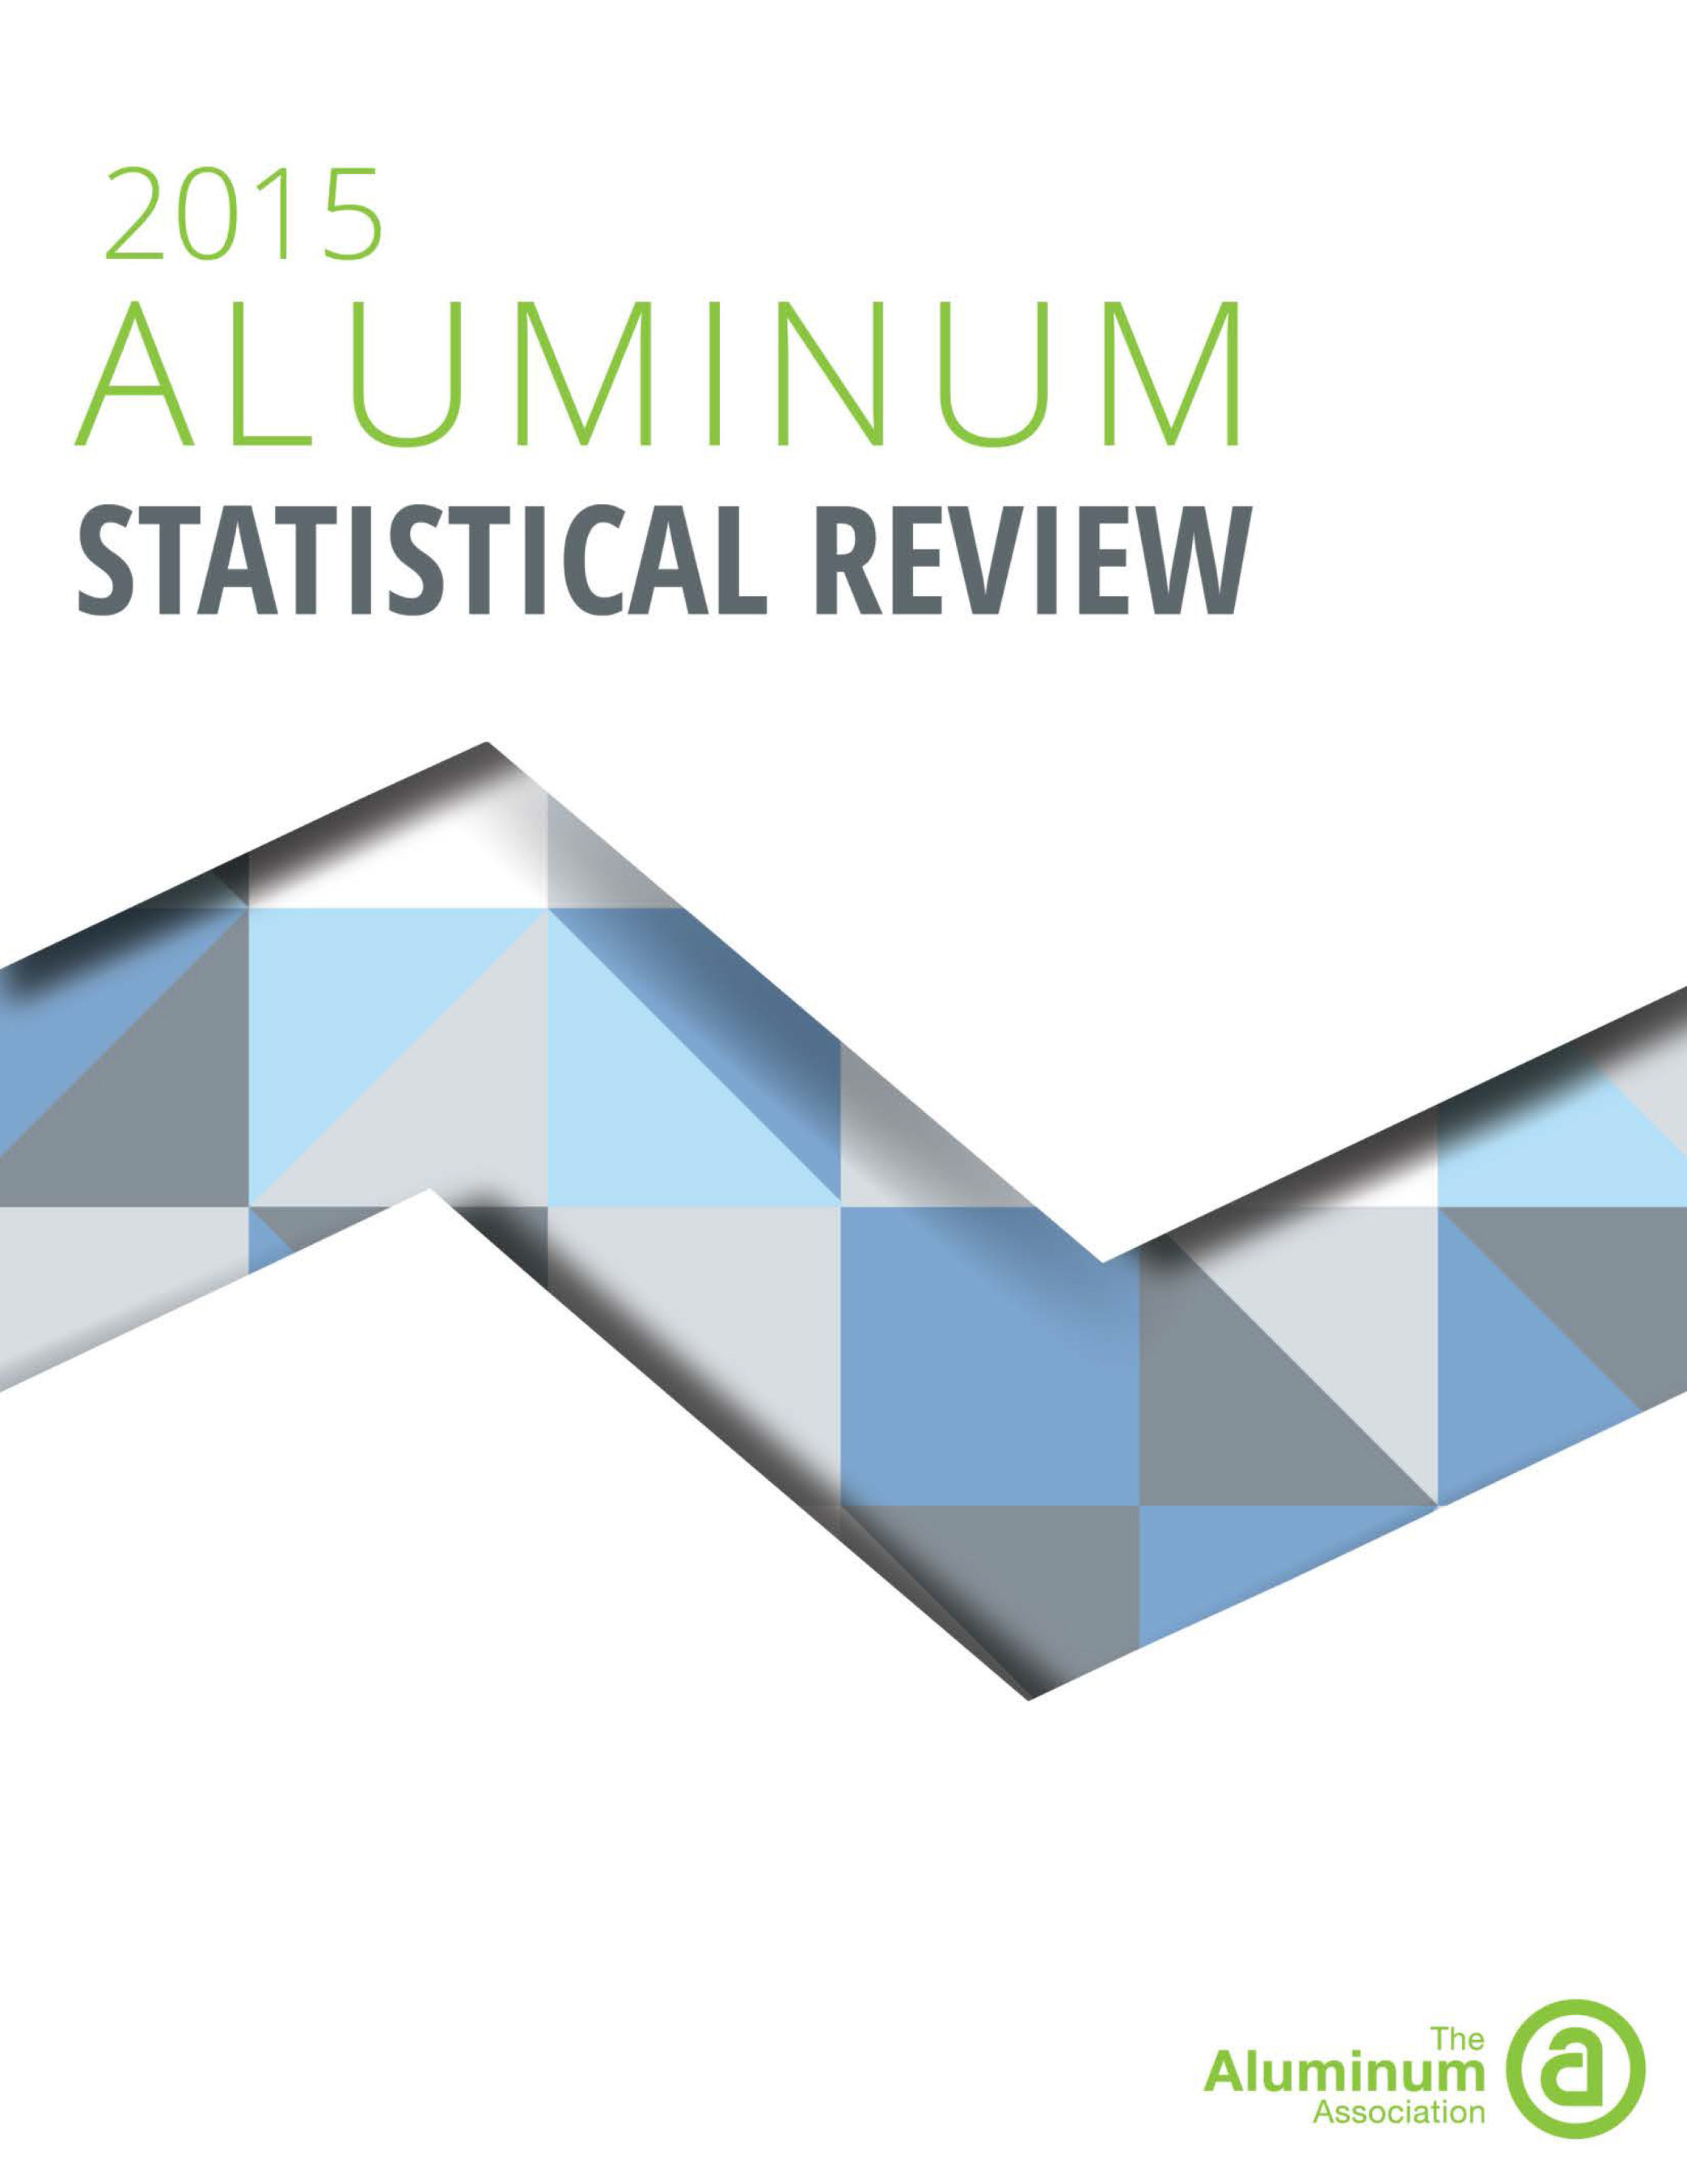 The Aluminum Statistical Review for 2015